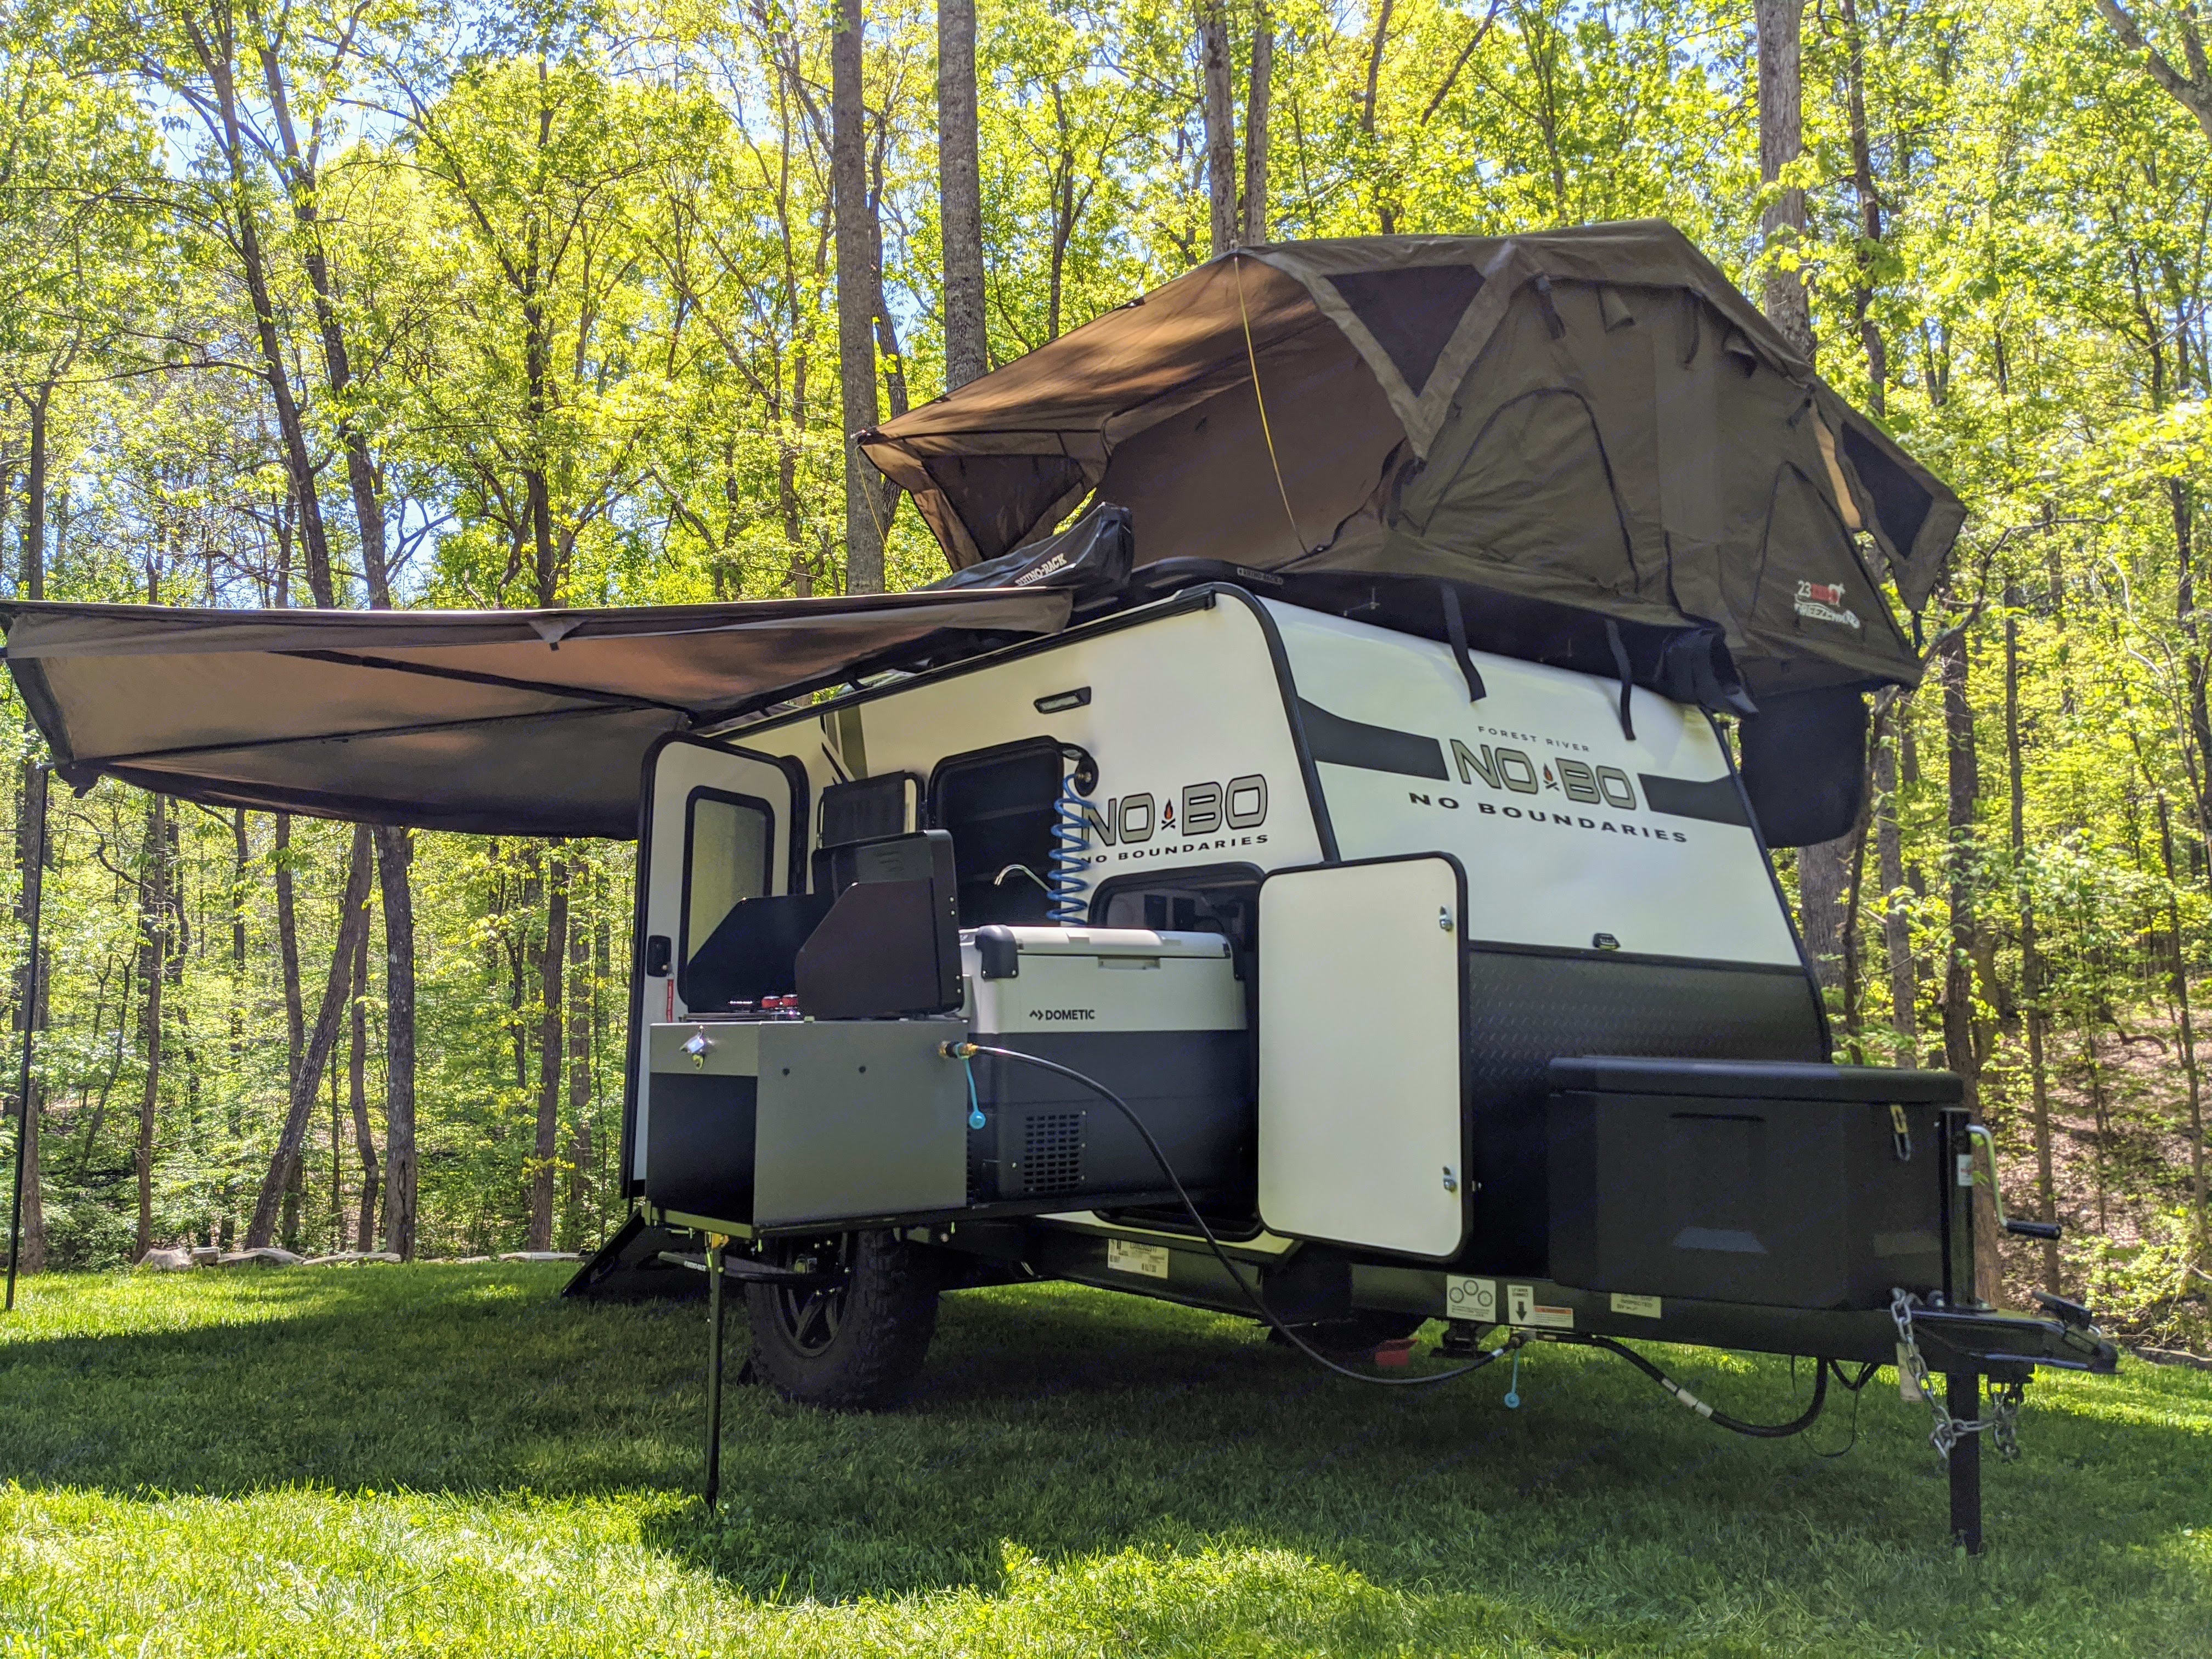 Awesome, versatile rig is perfect for Family Getaways, Overlanding, Tailgating, Hunting, and more!. Forest River No Boundaries 10.6 2020